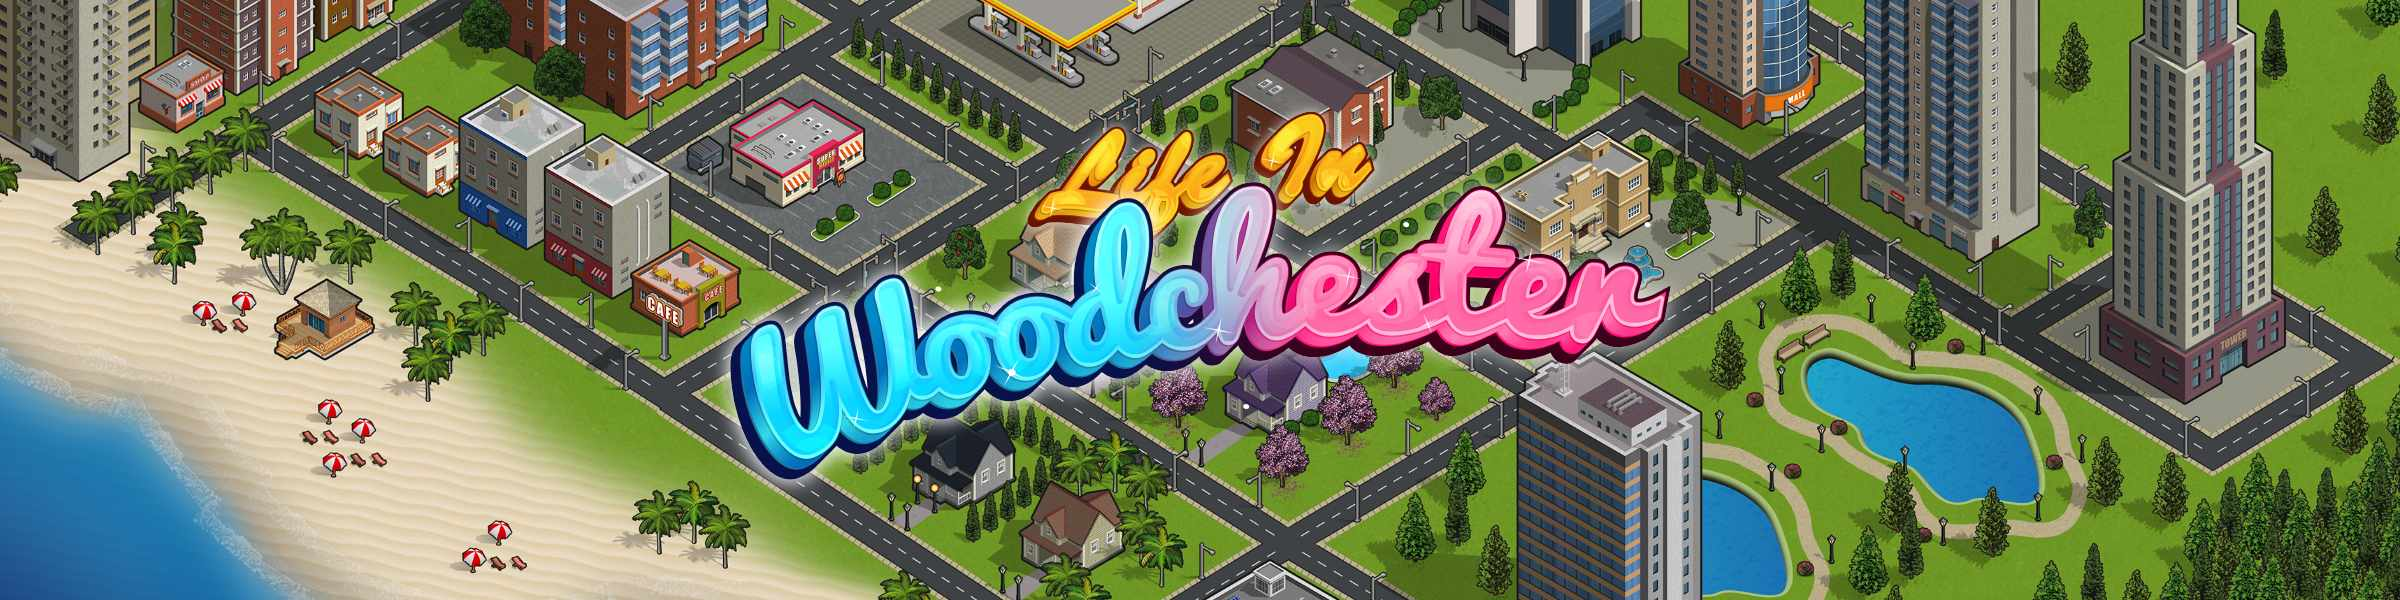 Life in Woodchester [Dirty Sock Games]